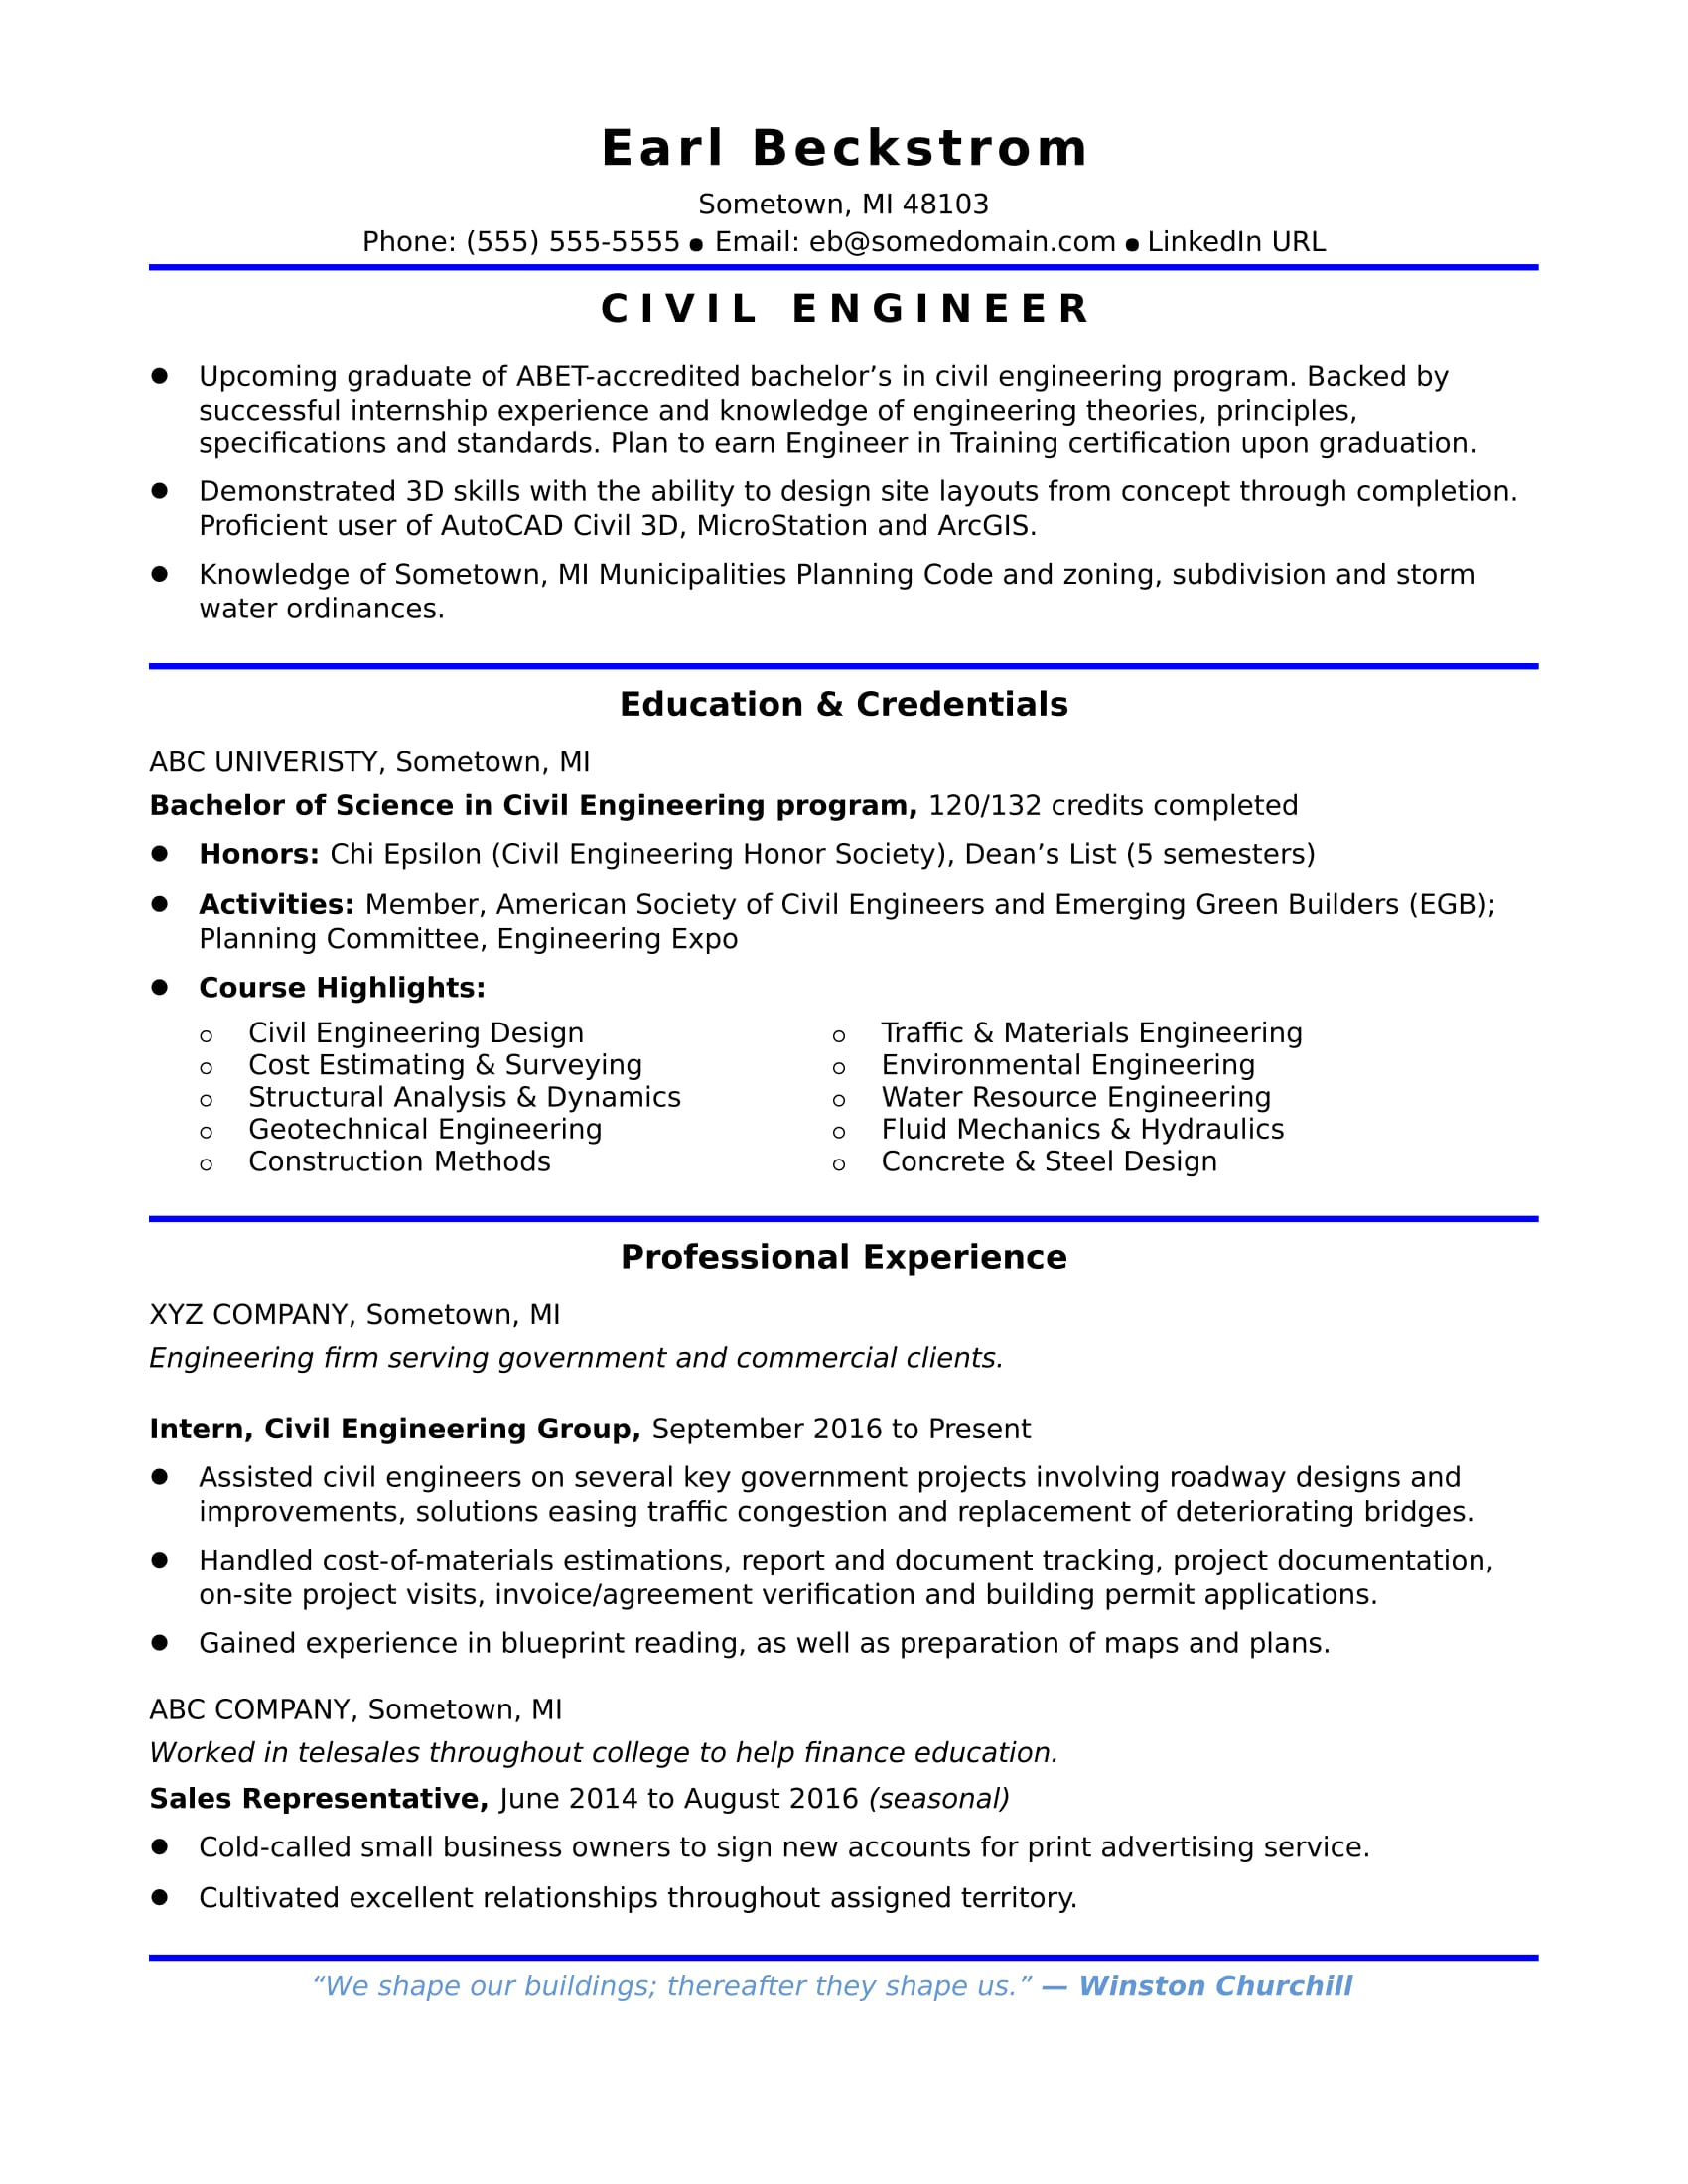 Sample resume for an entry level civil engineer for Certified professional building designer